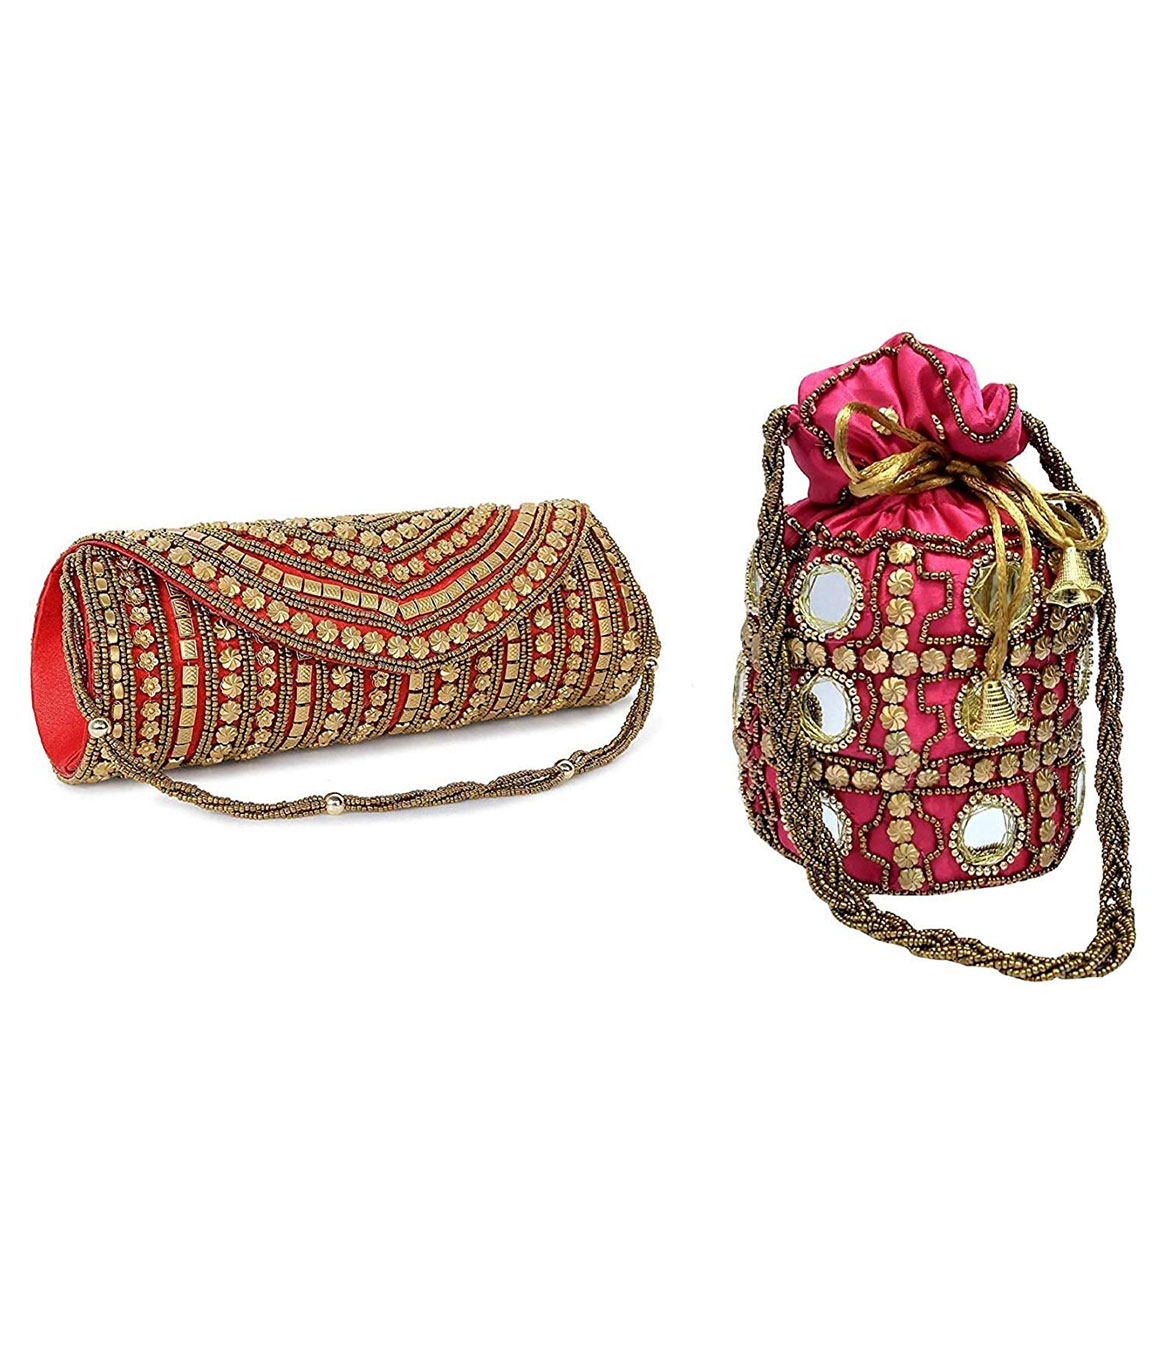 DN Enterprises Latest Potli & Clutch Combo For Women/Girls Fancy Potli Bag & Bridal Clutch(pink&red)